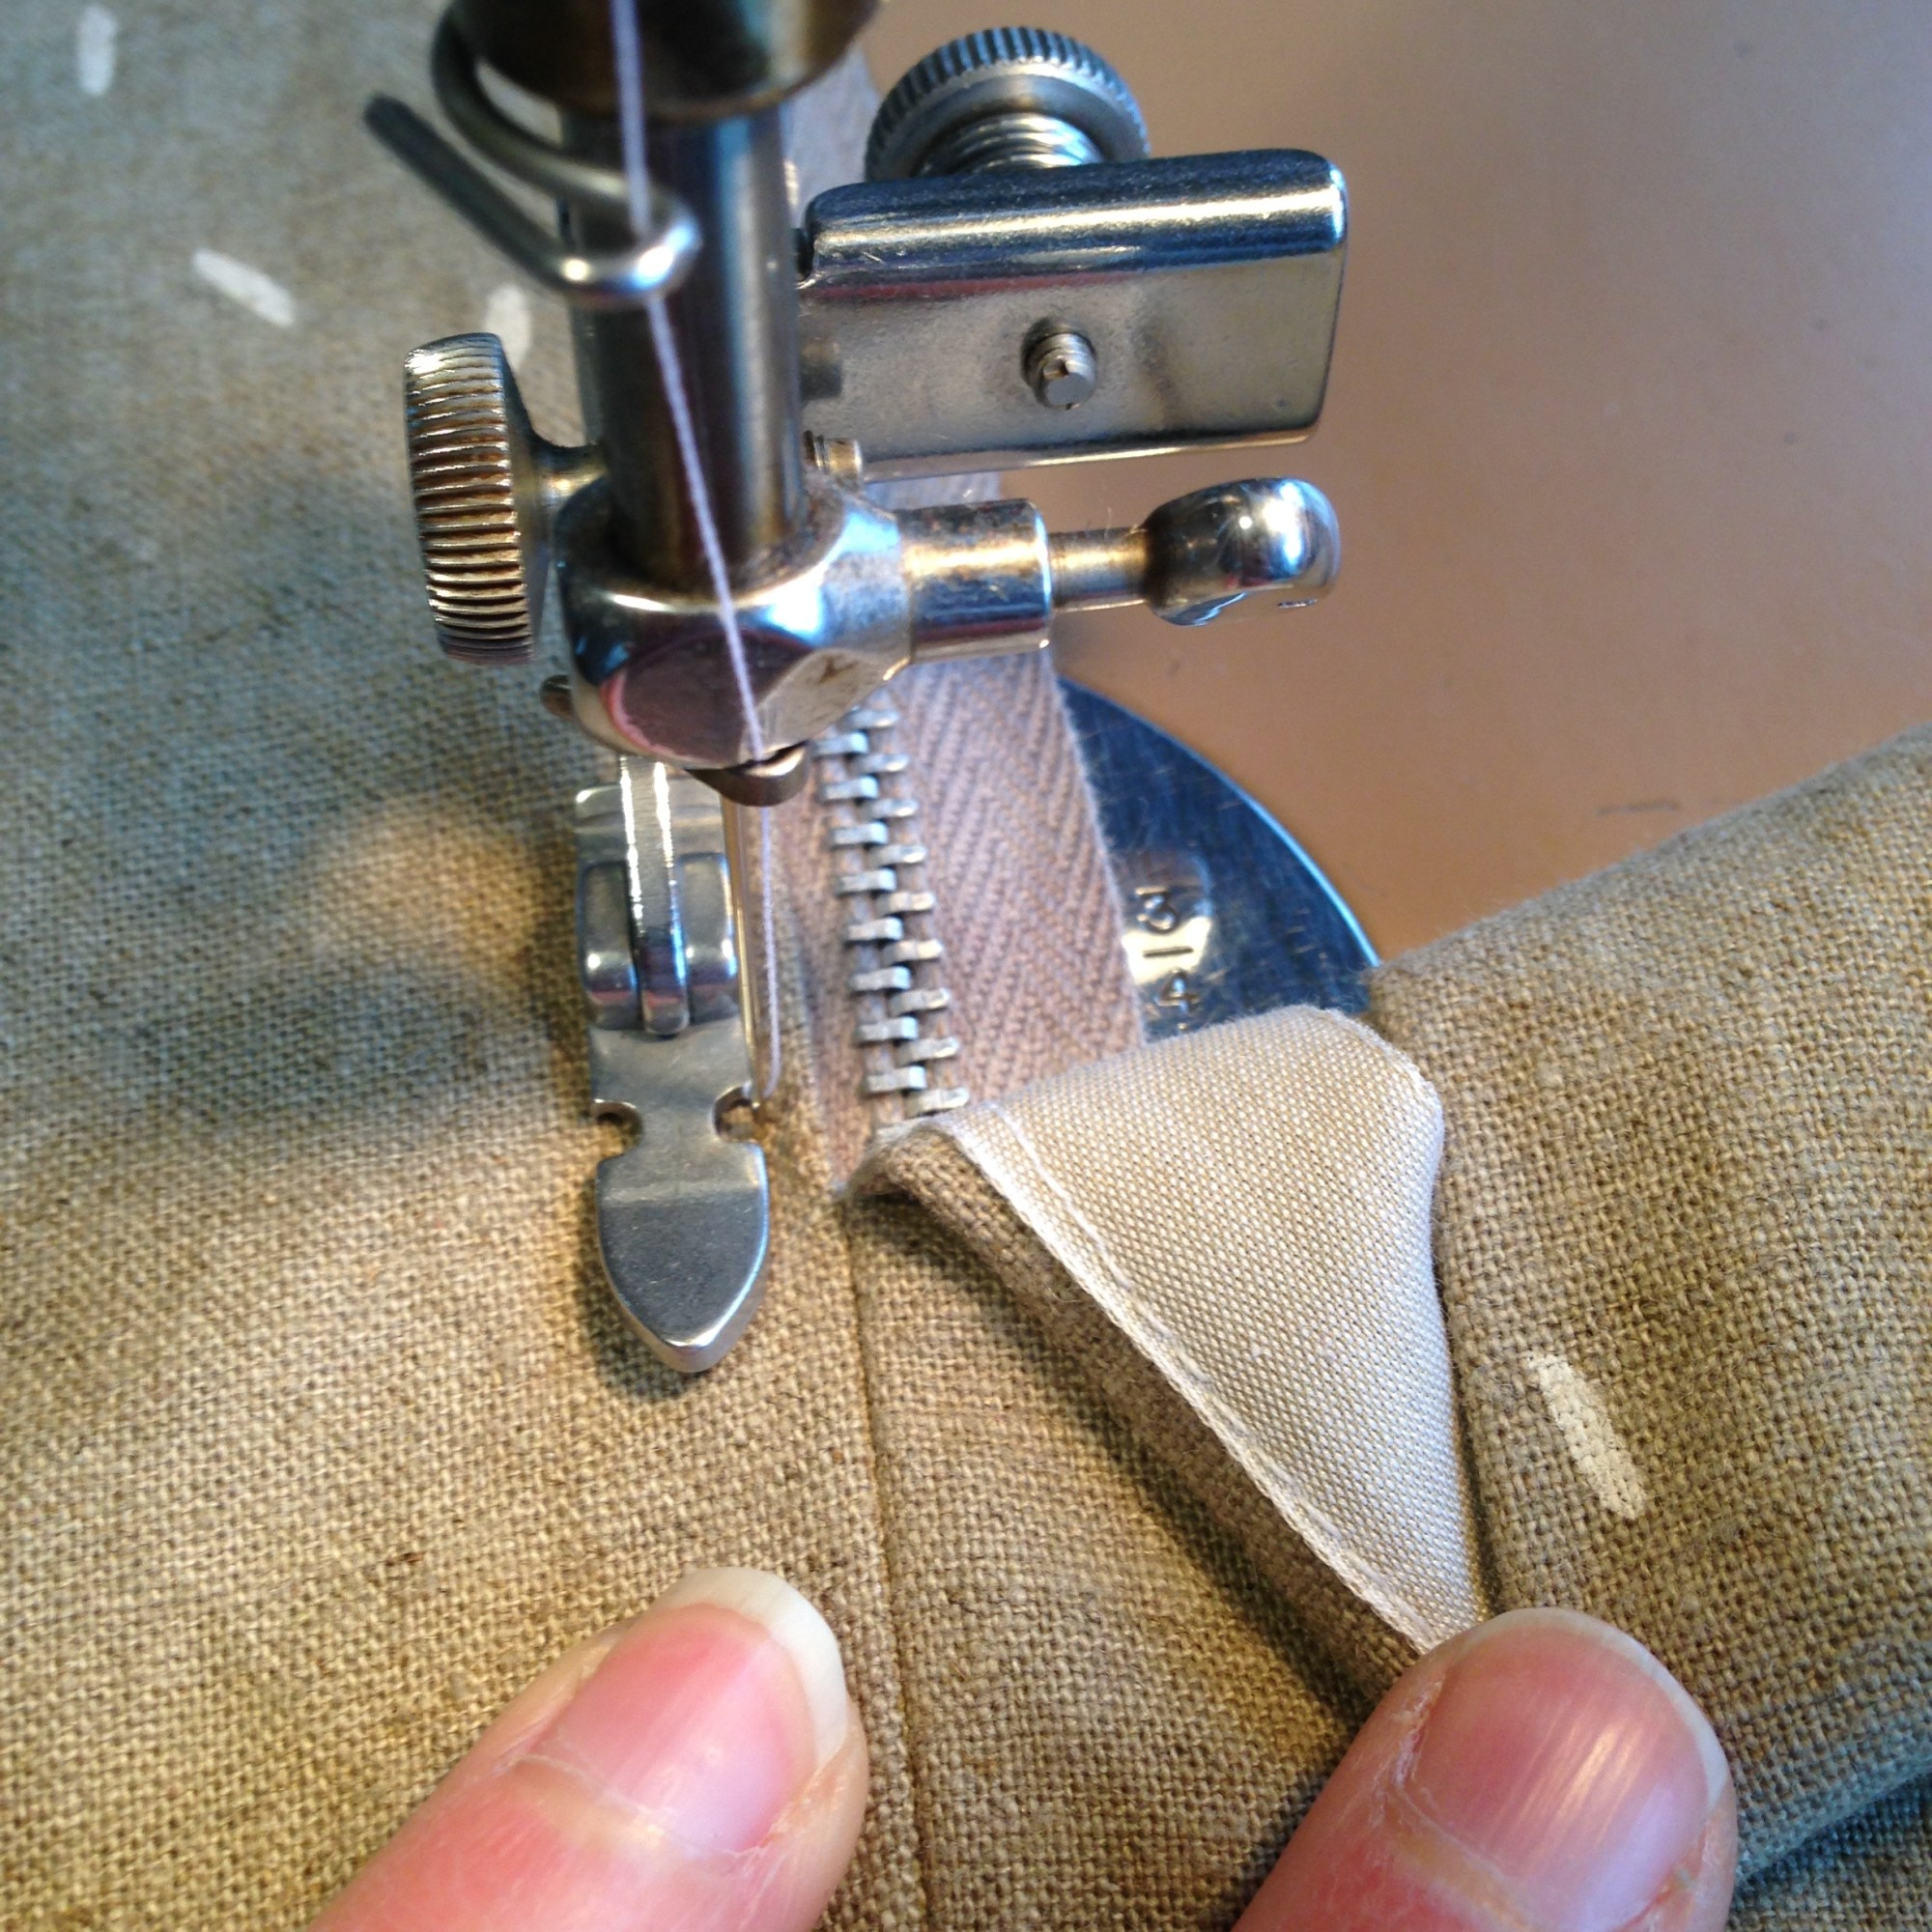 hight resolution of in this picture i ve attached a ribbon to my zipper seam allowance to